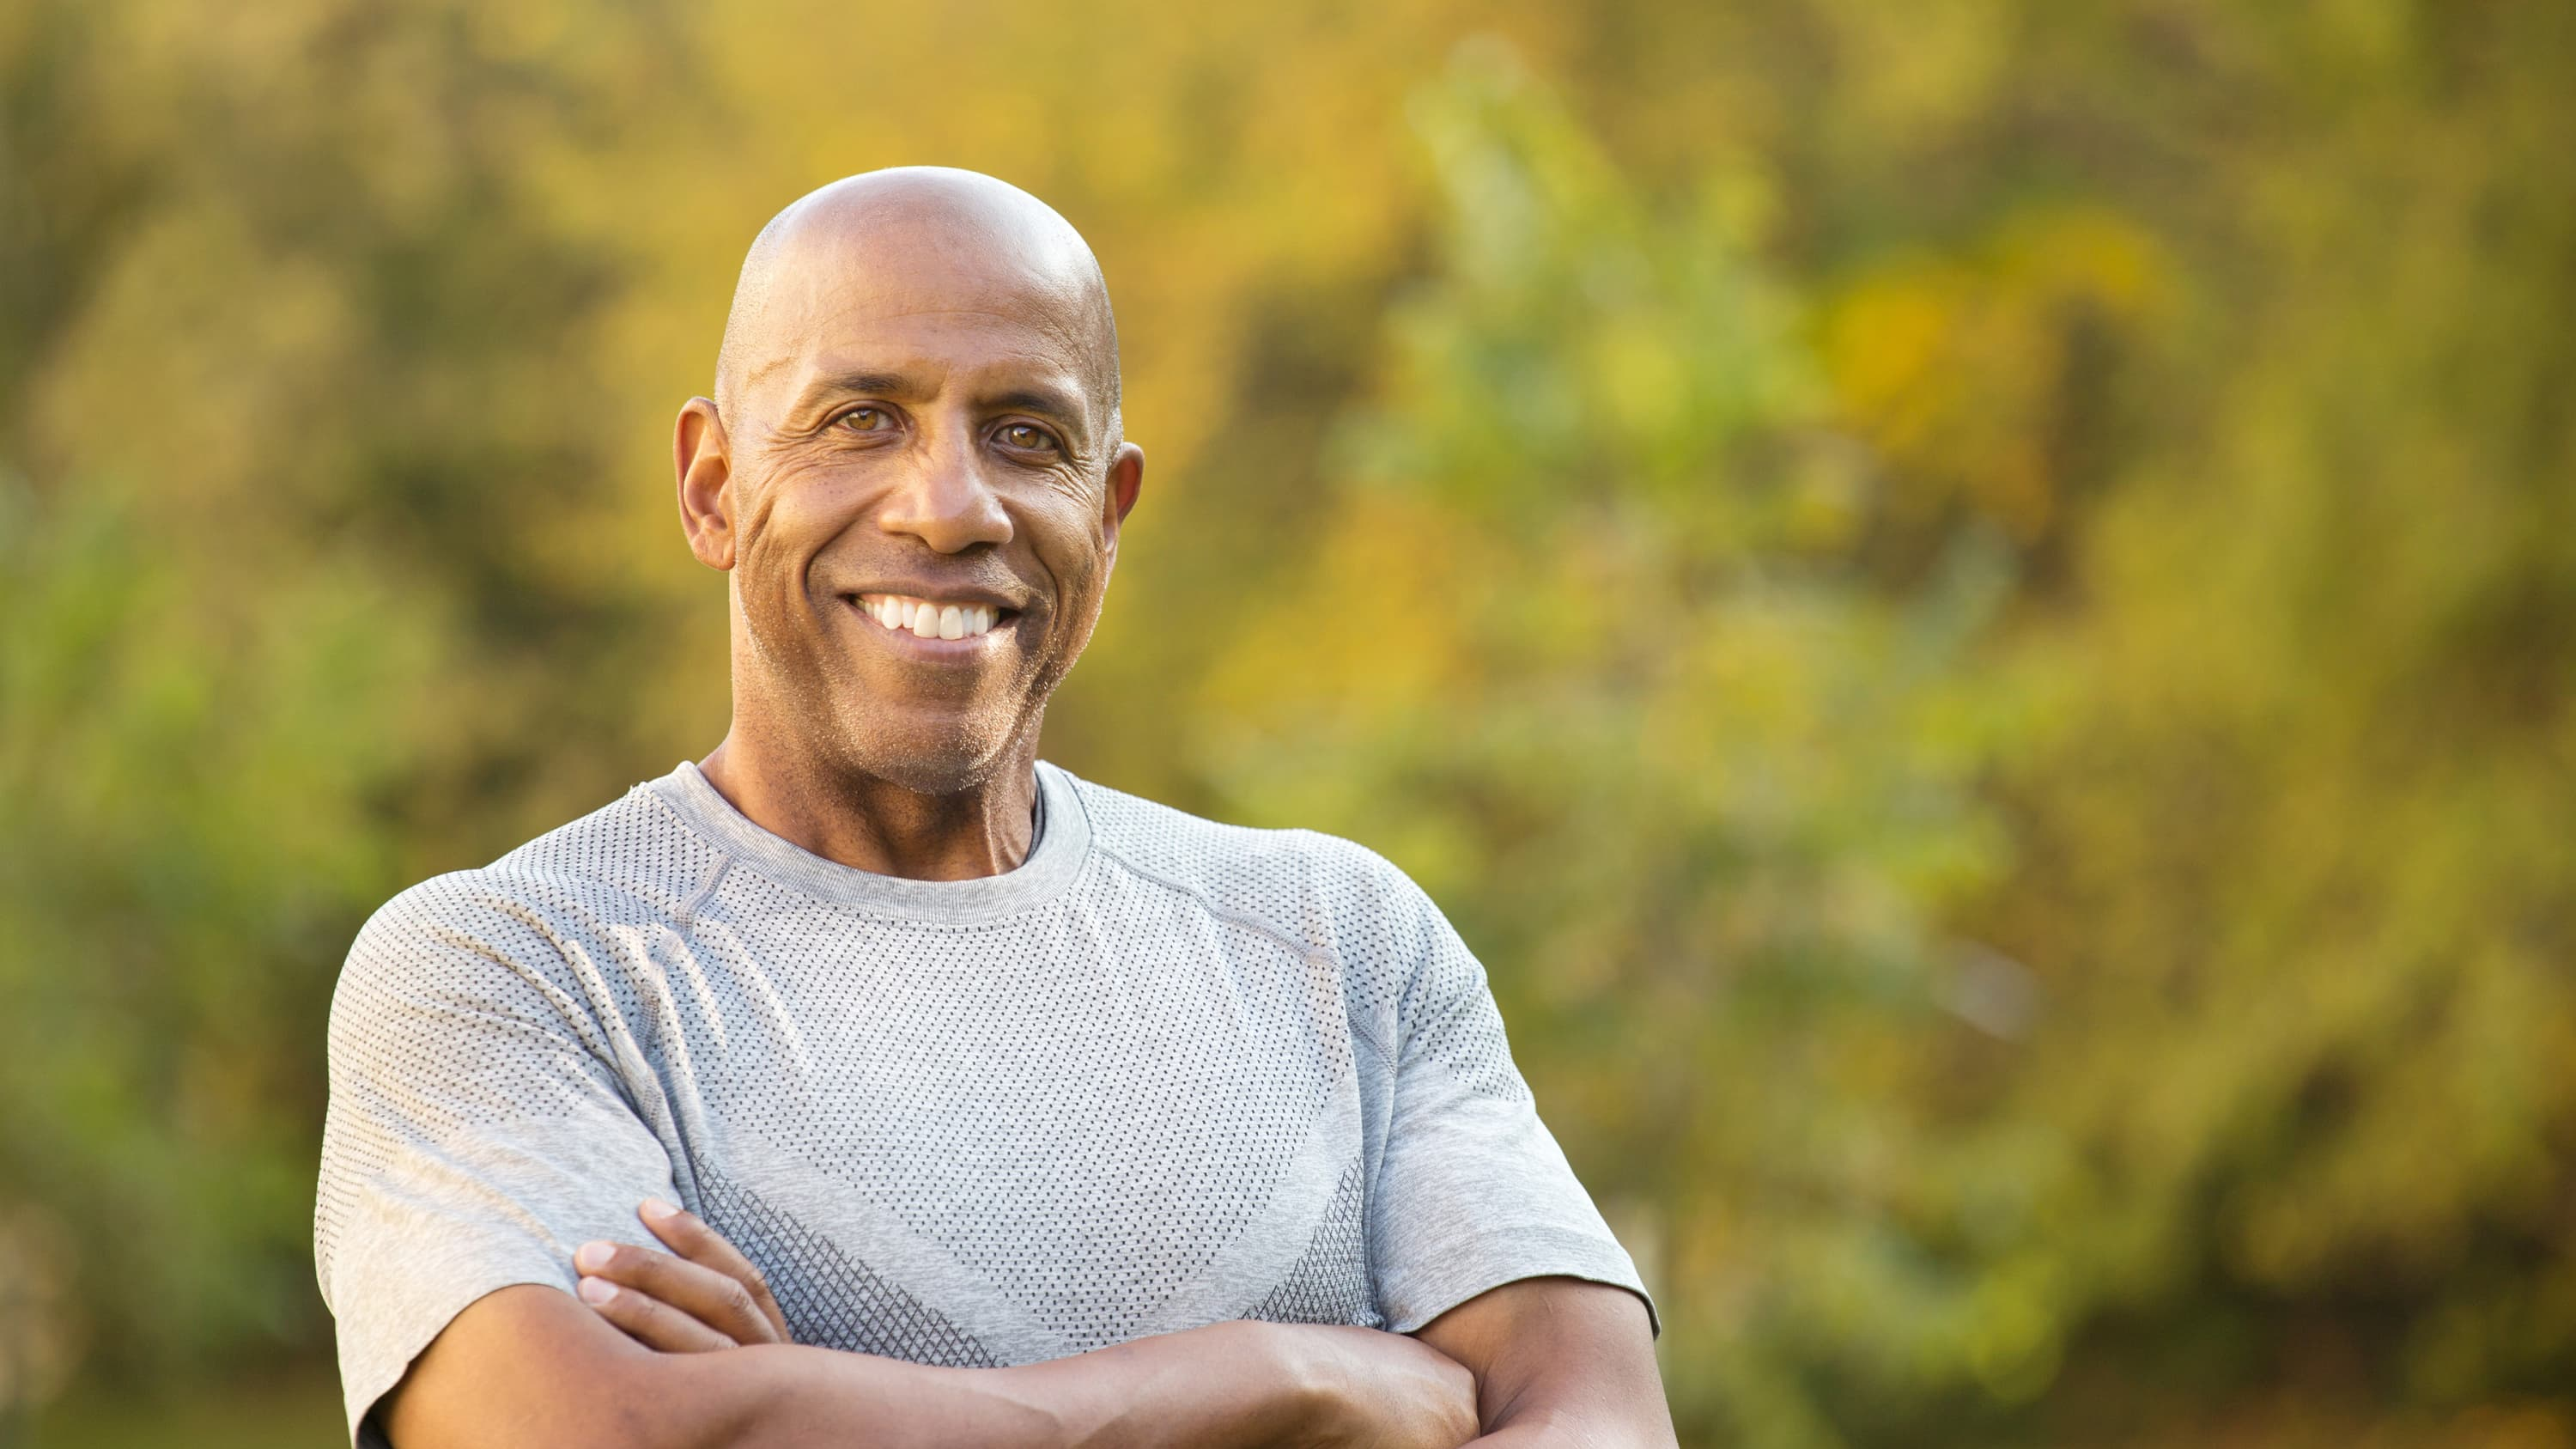 A man in good health may have benign colorectal polyps.